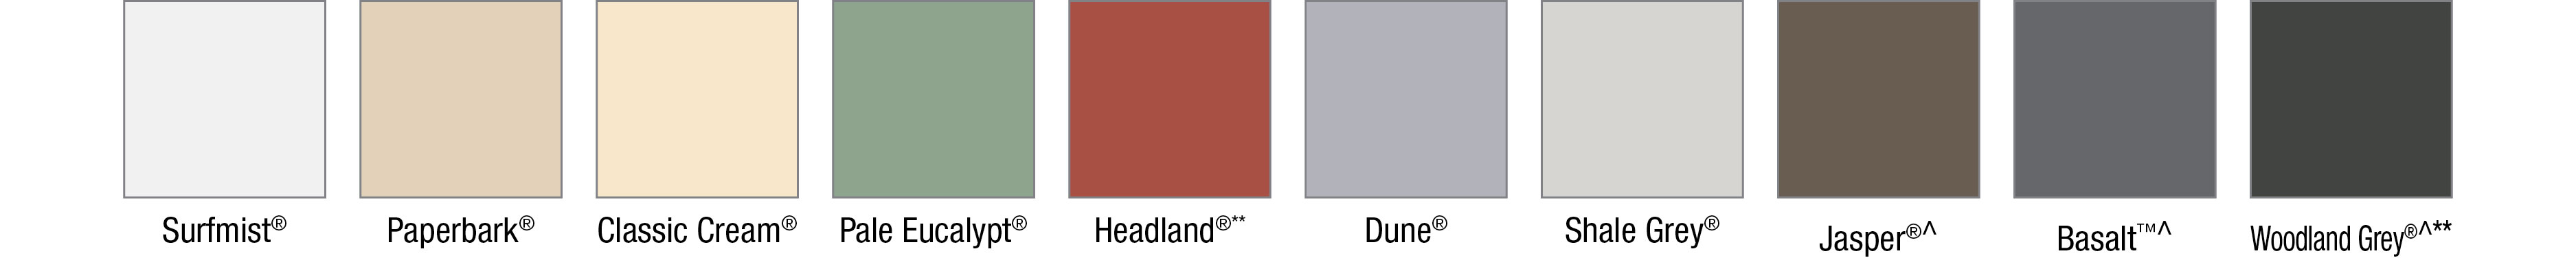 SolarSpan_InsulRoof_Colorbond_Roof_Colours